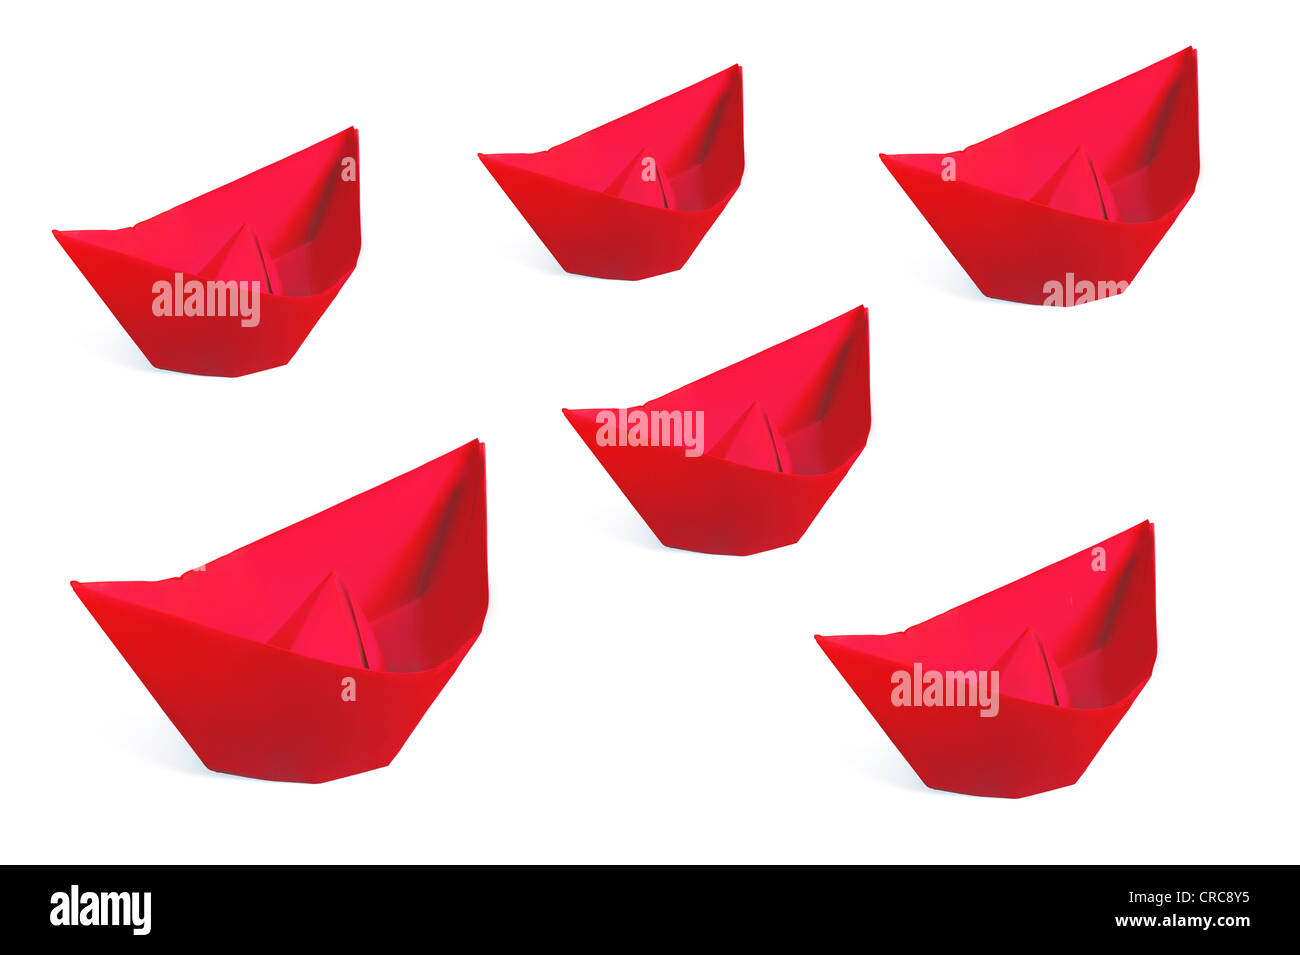 Red paper ships isolated on a white background - Stock Image